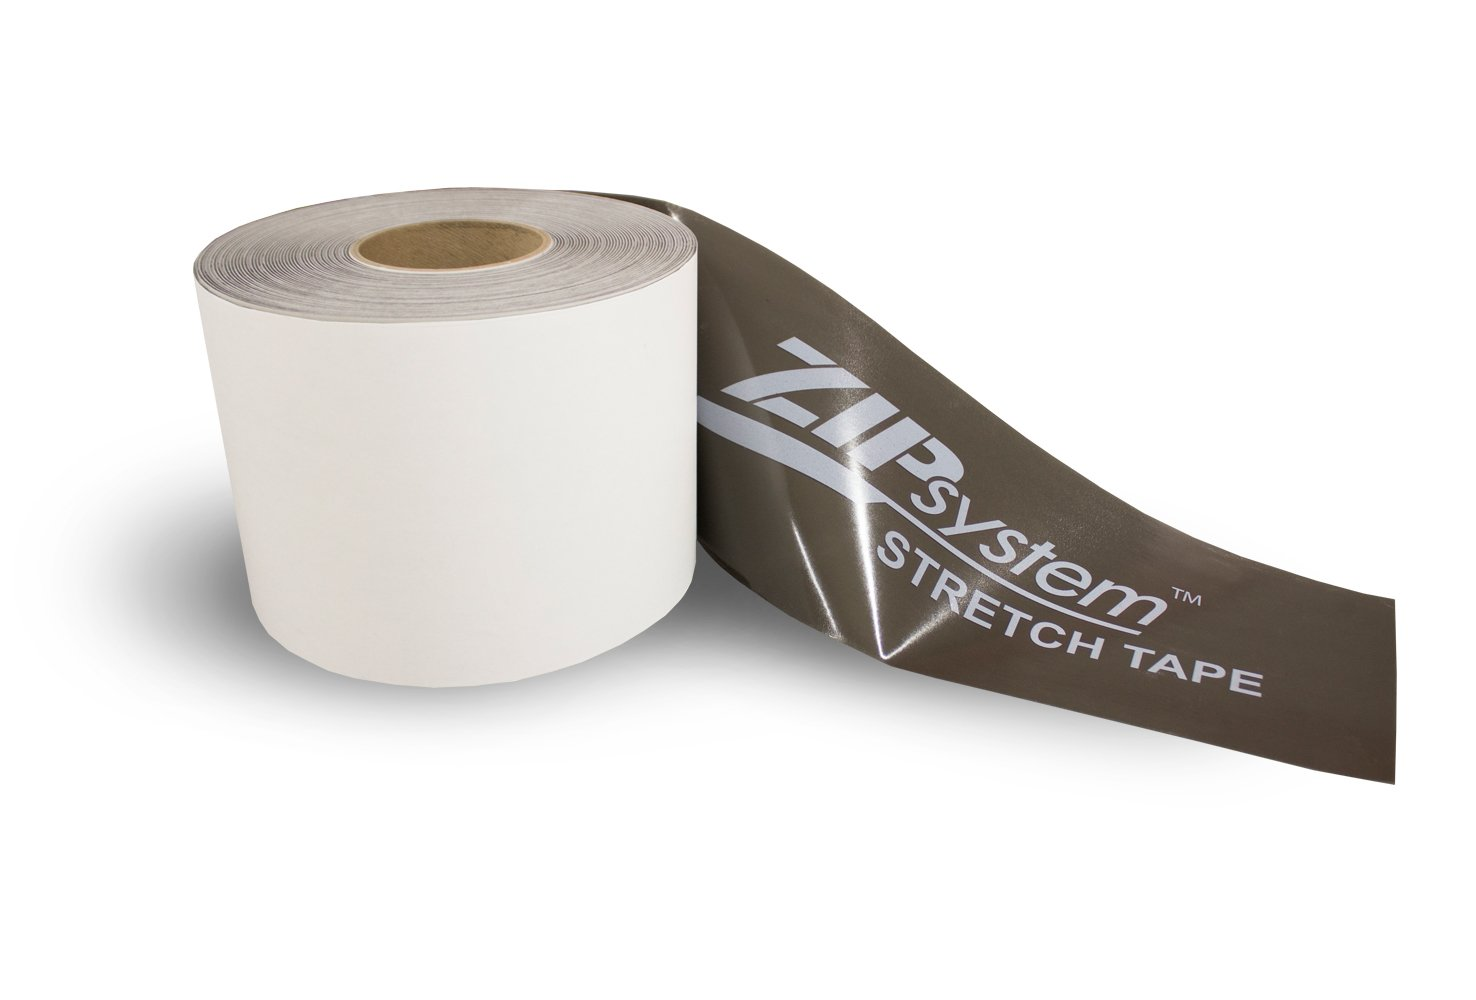 Huber ZIP System Stretch Tape | 10 inches x 20 feet | Self-Adhesive Flexible Flashing for Doors-Windows by ZIP System